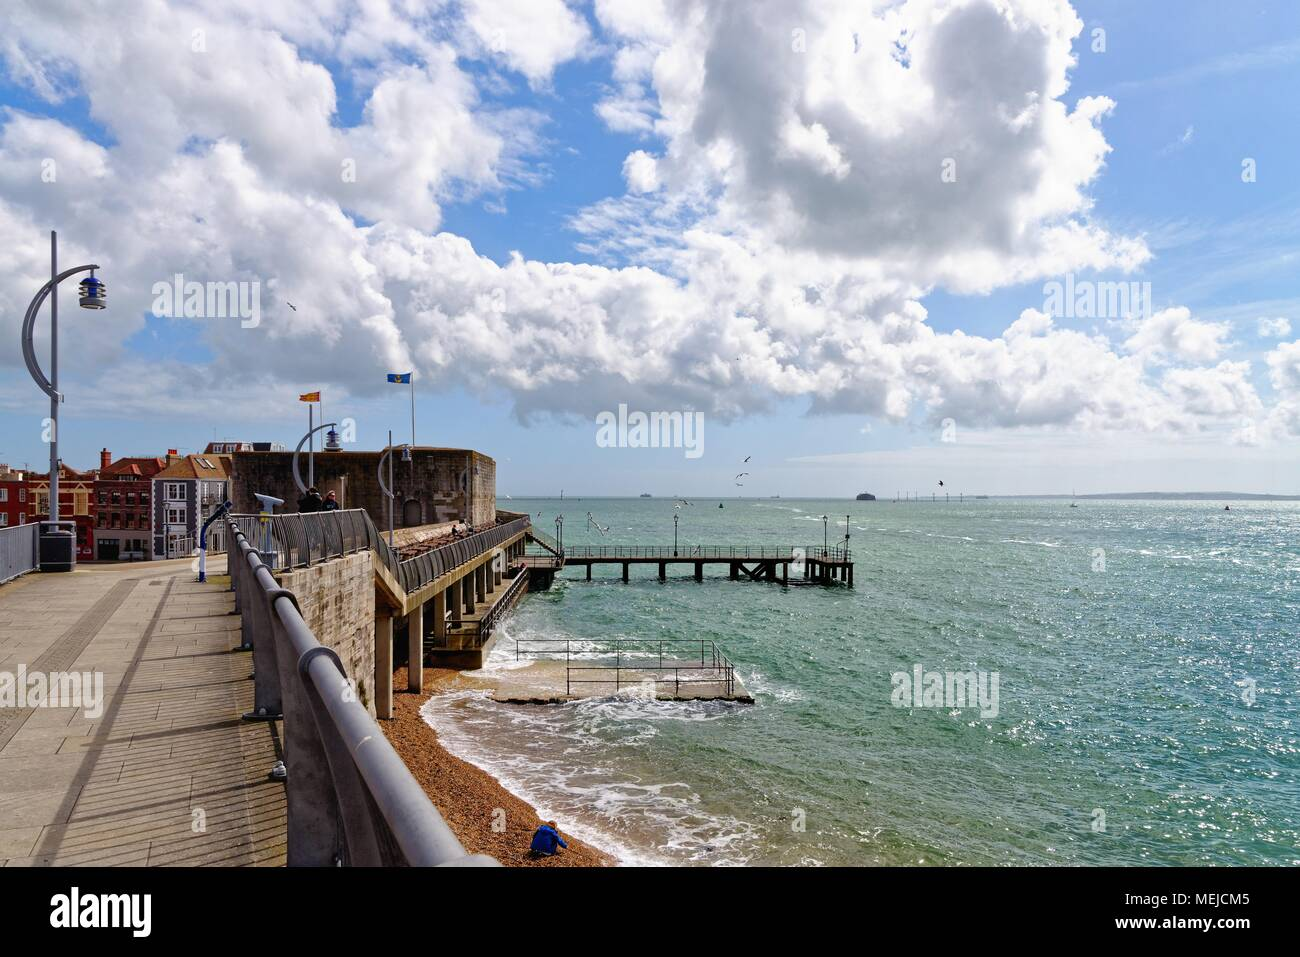 The historic fortifications on the seafront in old Portsmouth Hampshire England UK - Stock Image